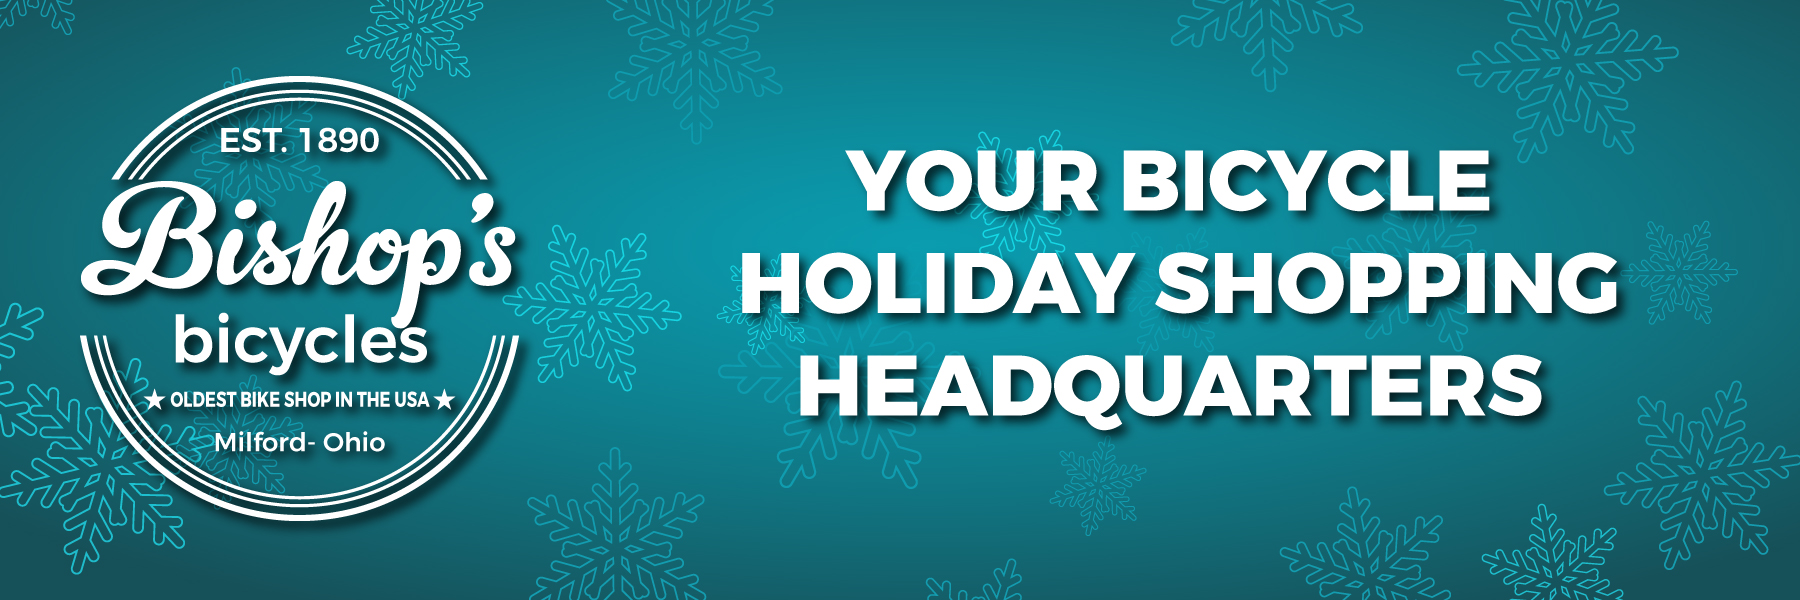 Your Bicycle Holiday Headquarters